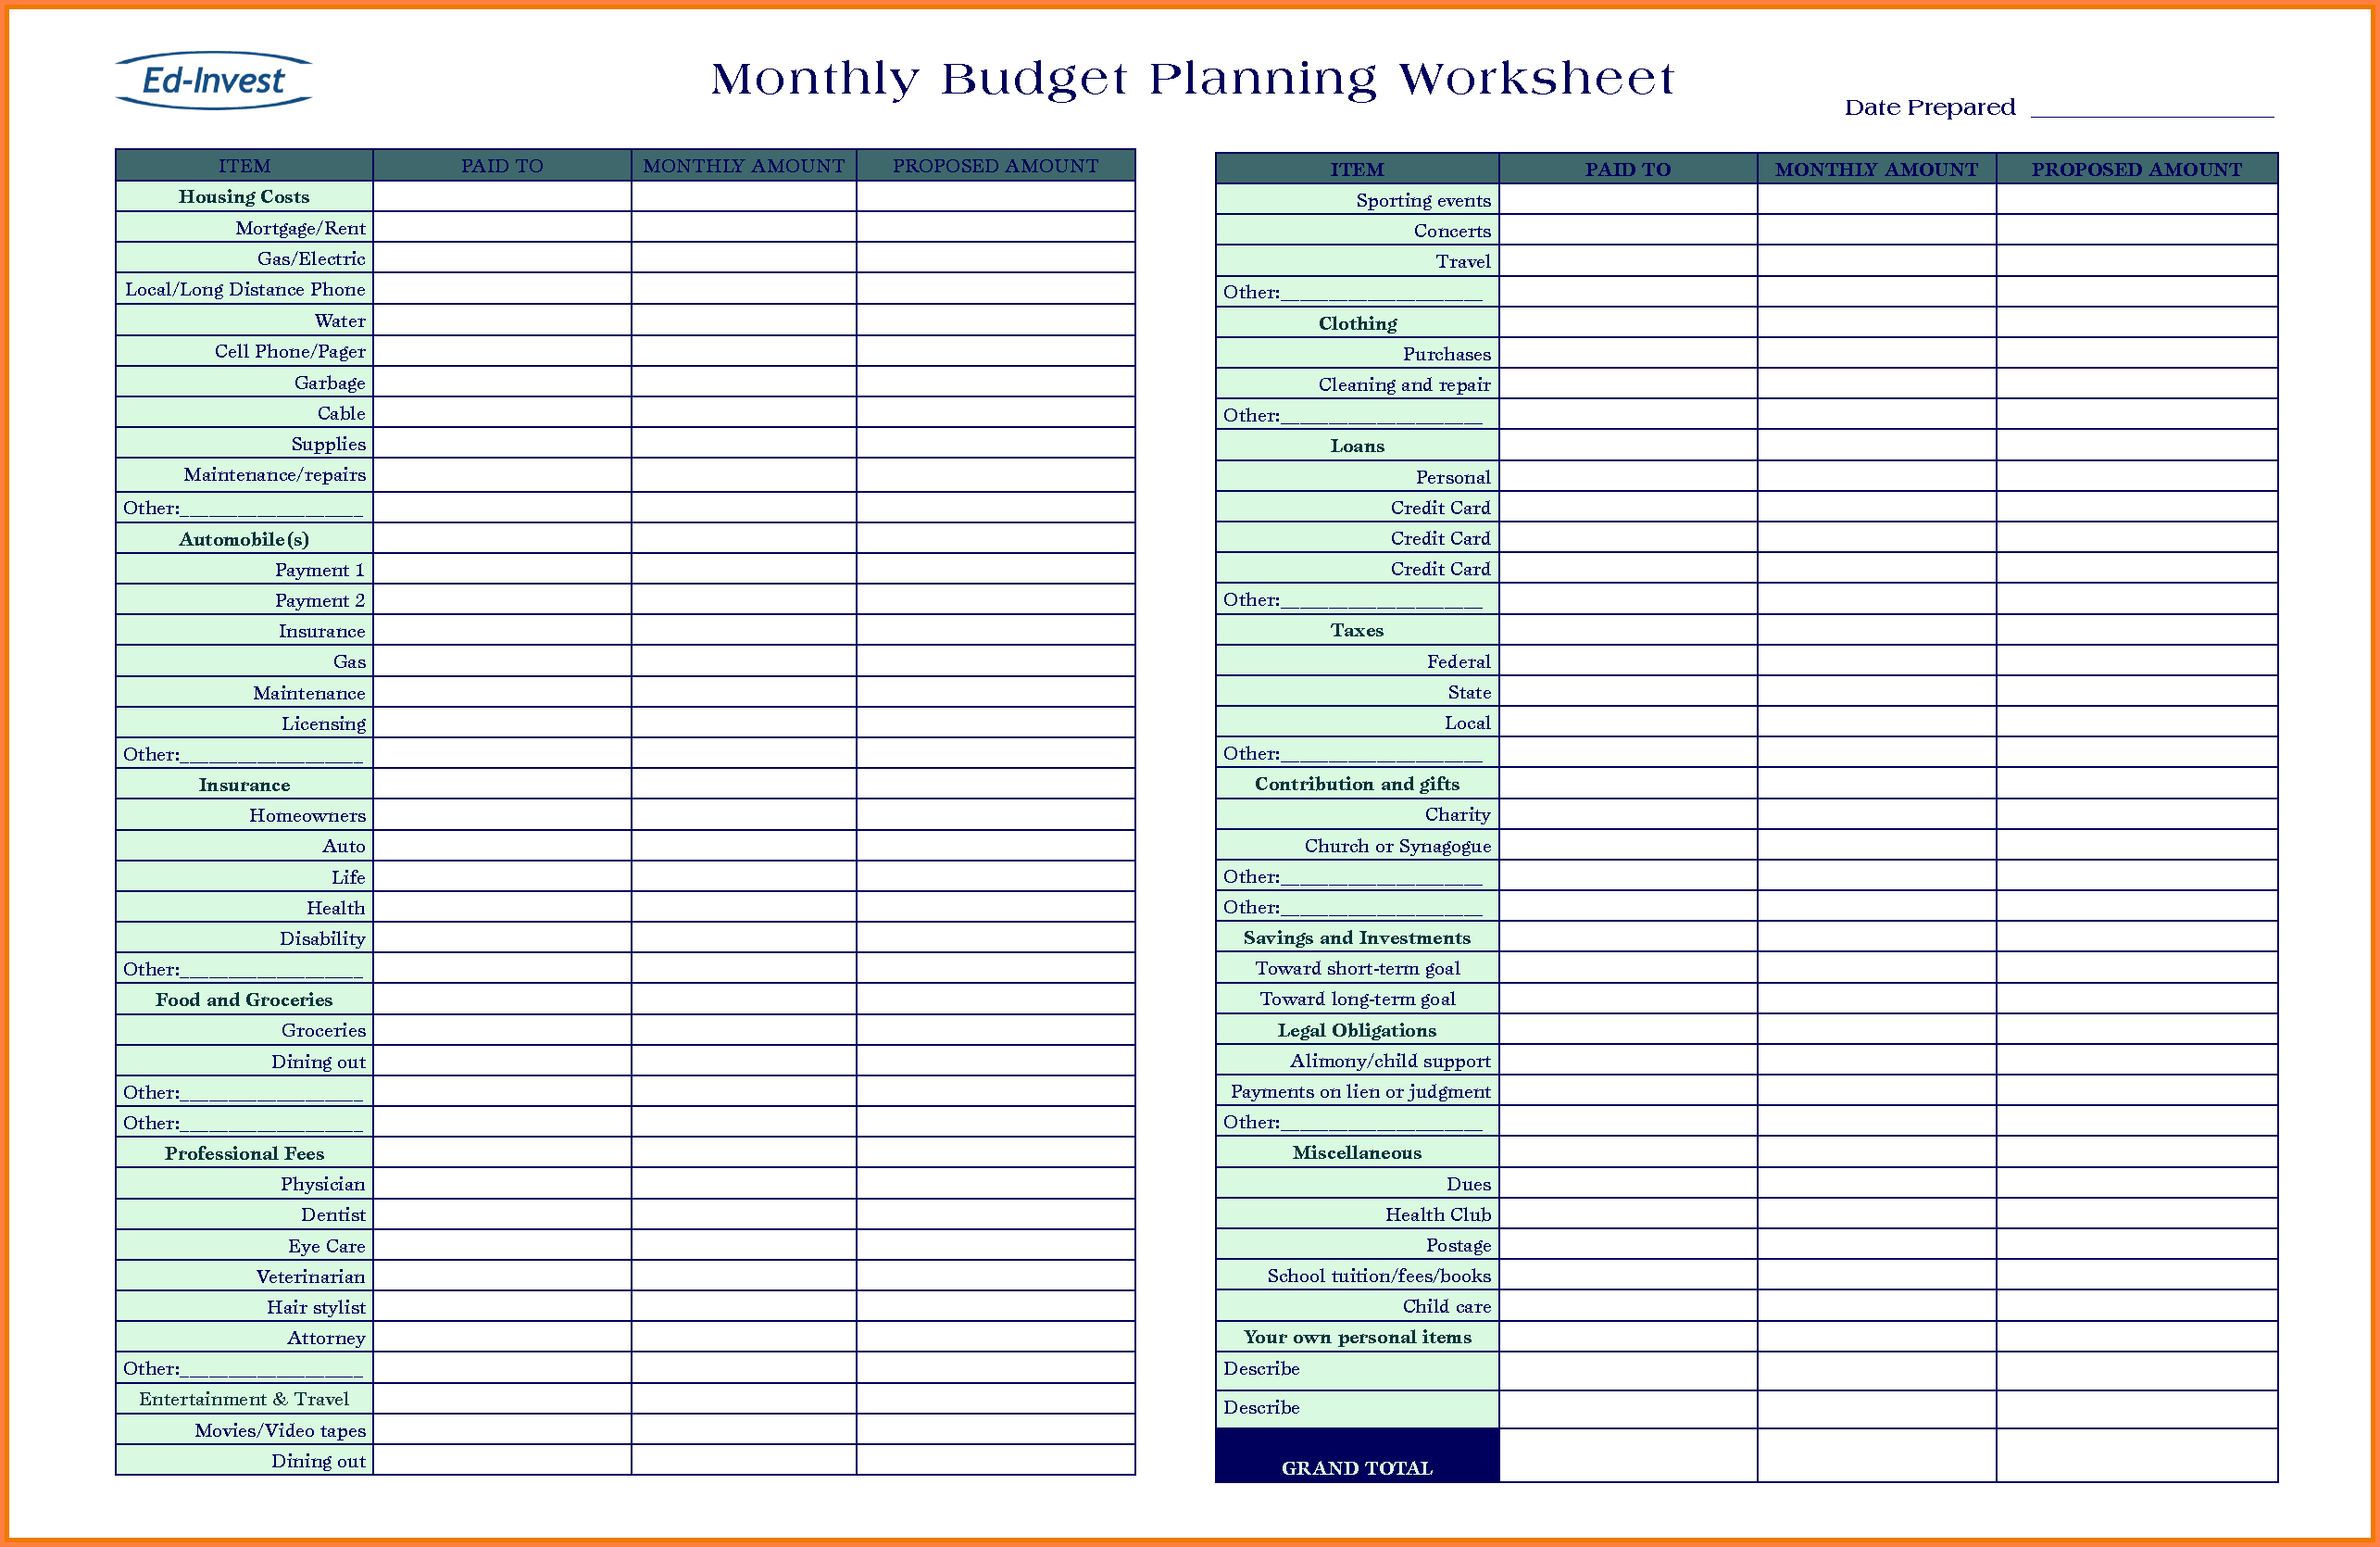 Budget Planning Spreadsheet Plannerorksheet Picture Highest Quality Intended For Budget Planning Spreadsheet